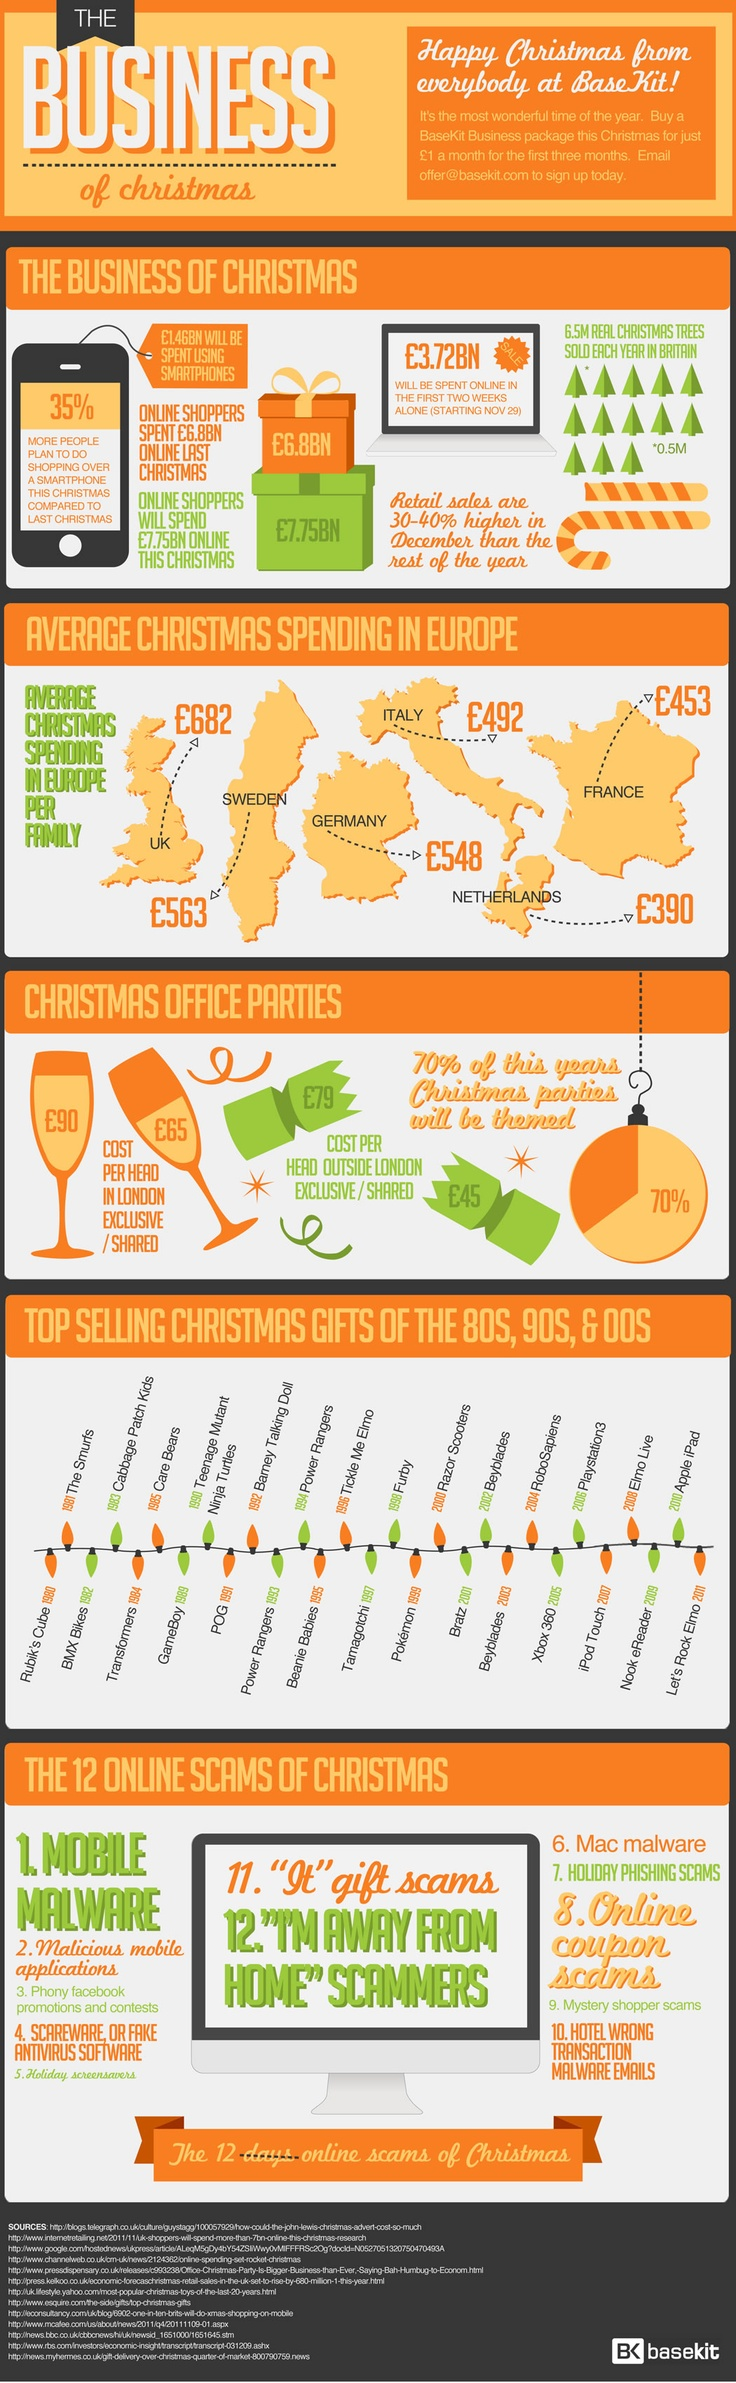 20 best Christmas Infographics images on Pinterest | Info graphics ...